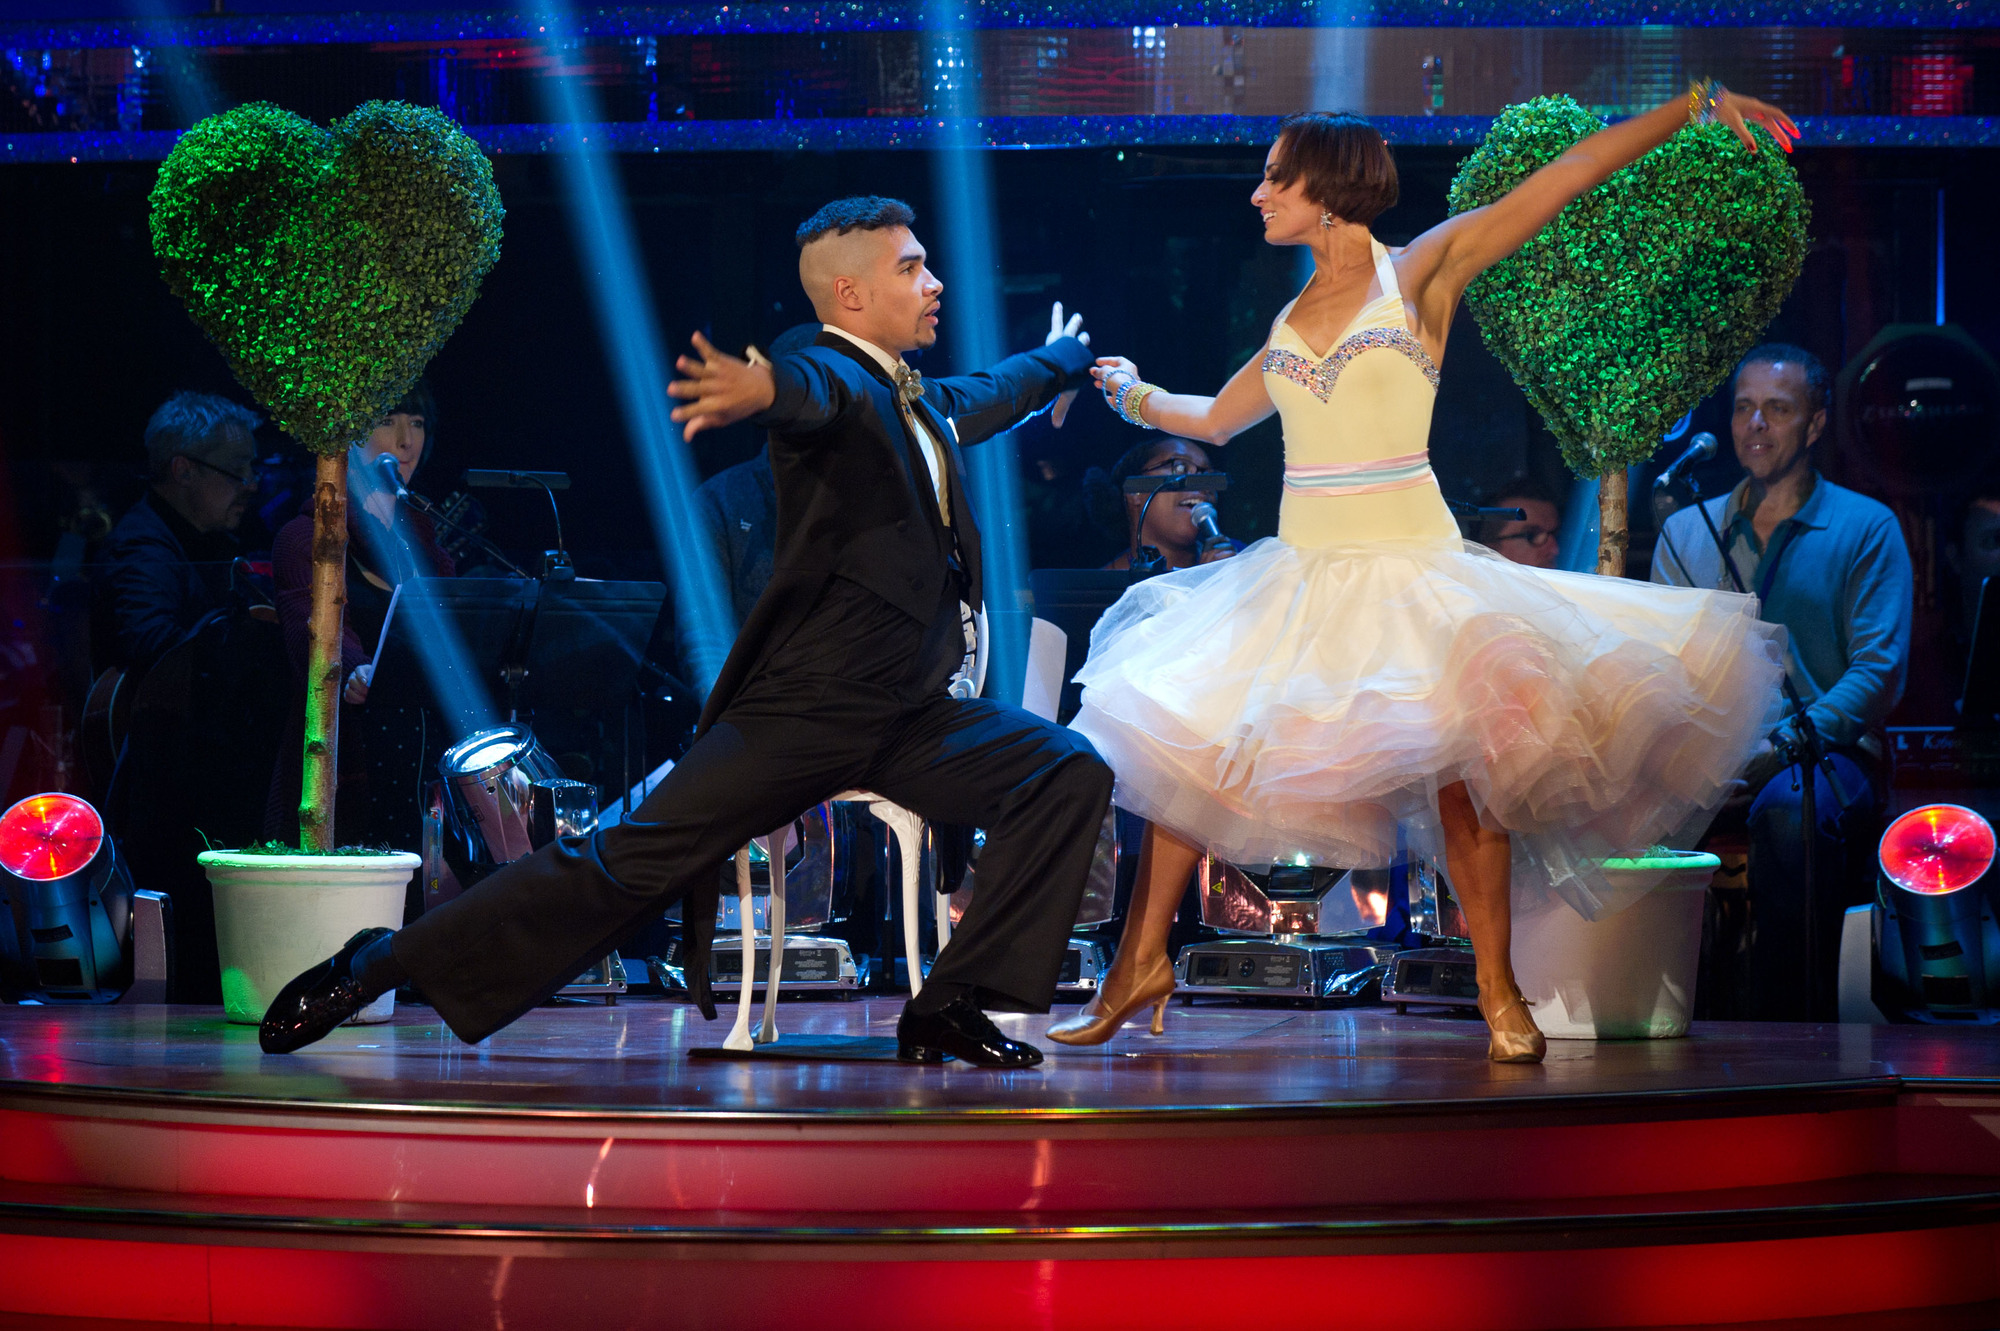 Louis Smith, Flavia Cacace - (C) BBC - Photographer: Des Willie